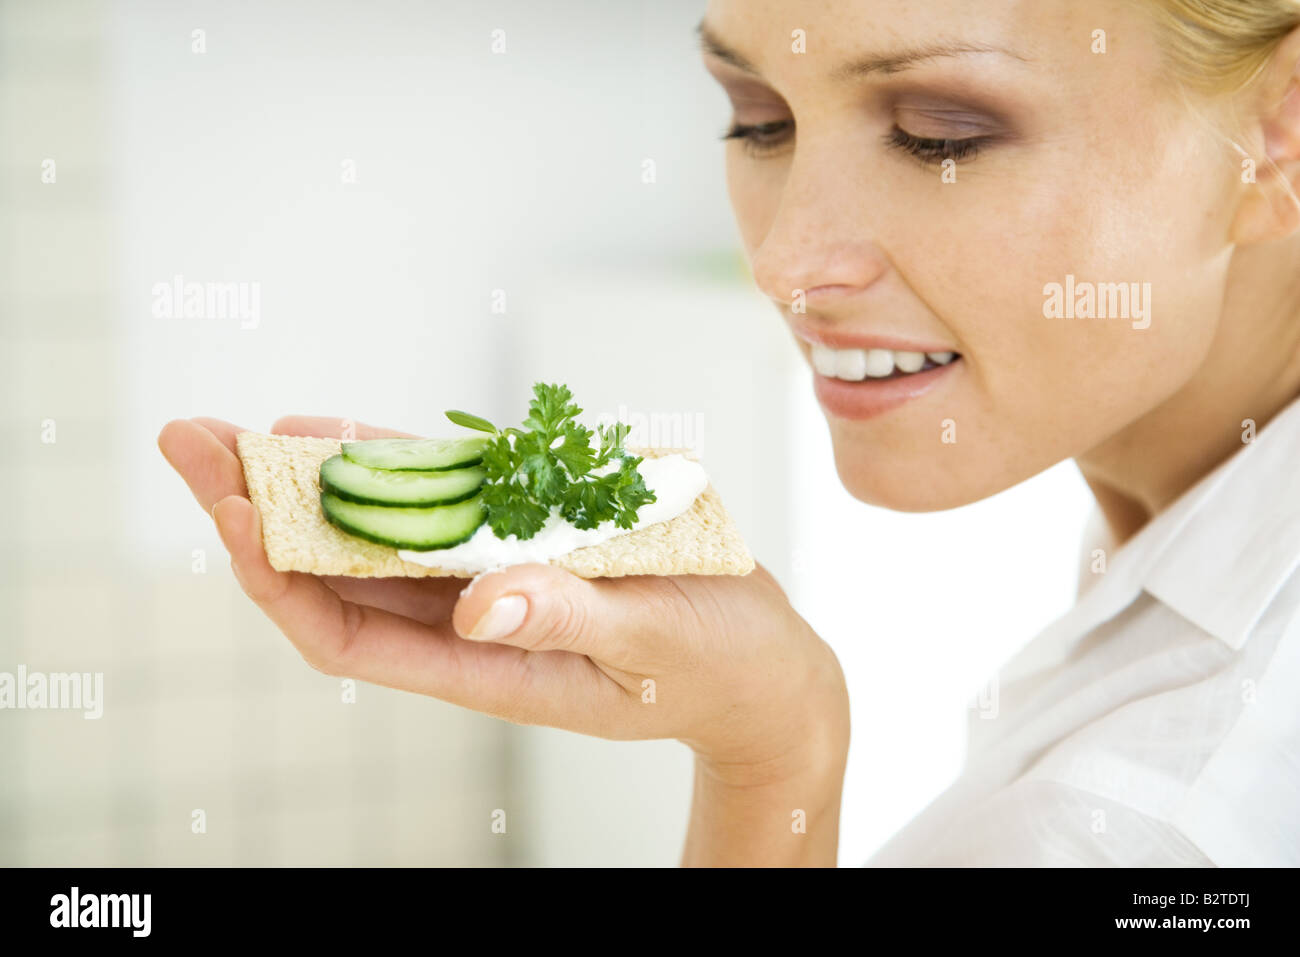 Woman holding up cracker with cucumber slices, smiling - Stock Image